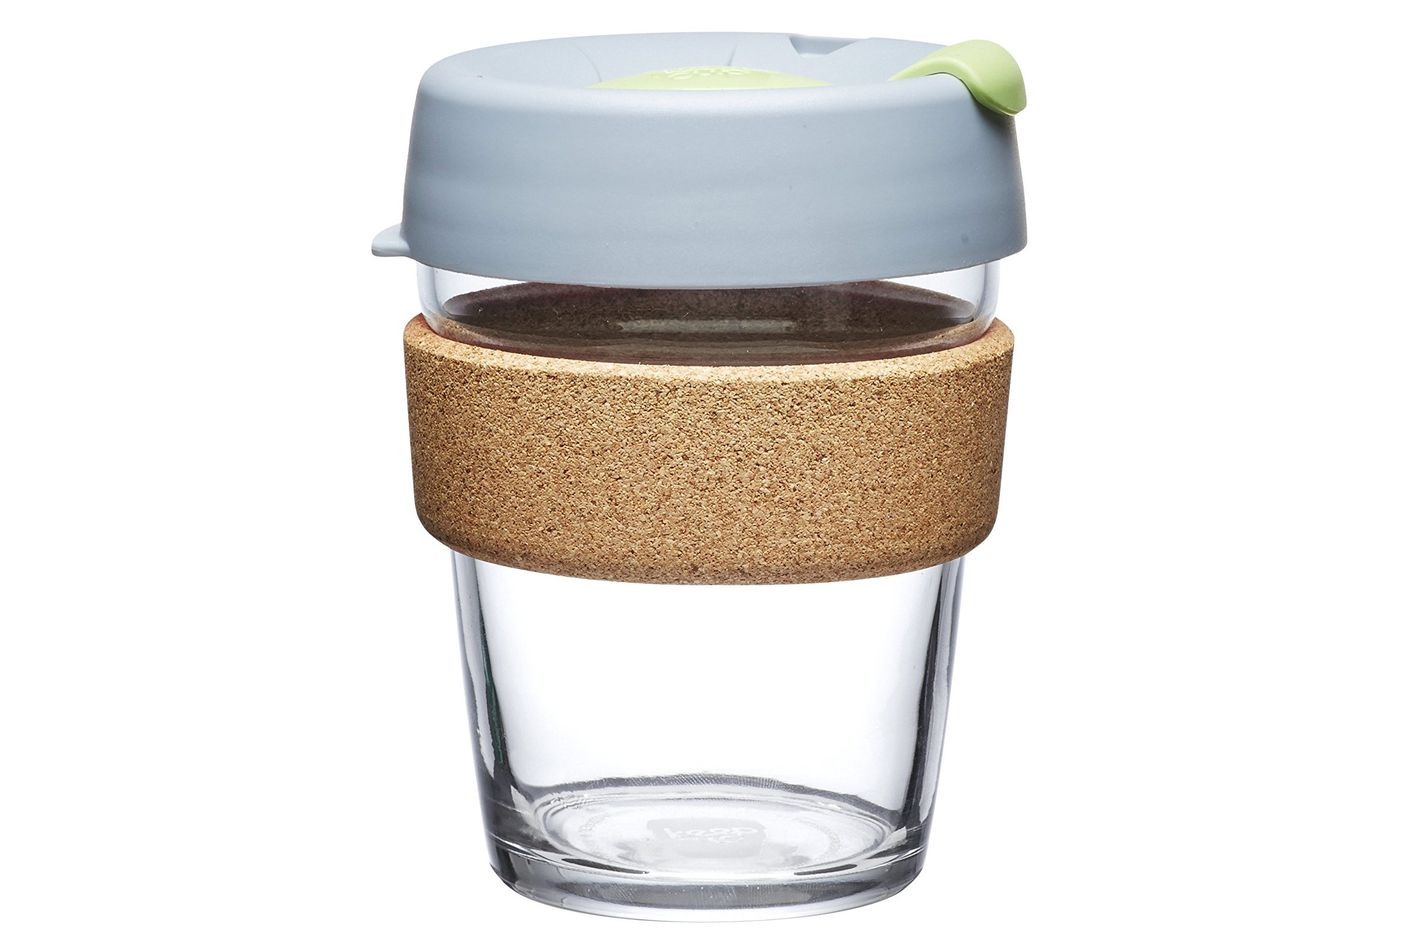 KeepCup Brew Glass Reusable Coffee Cup, 12-Ounce, Day Lily